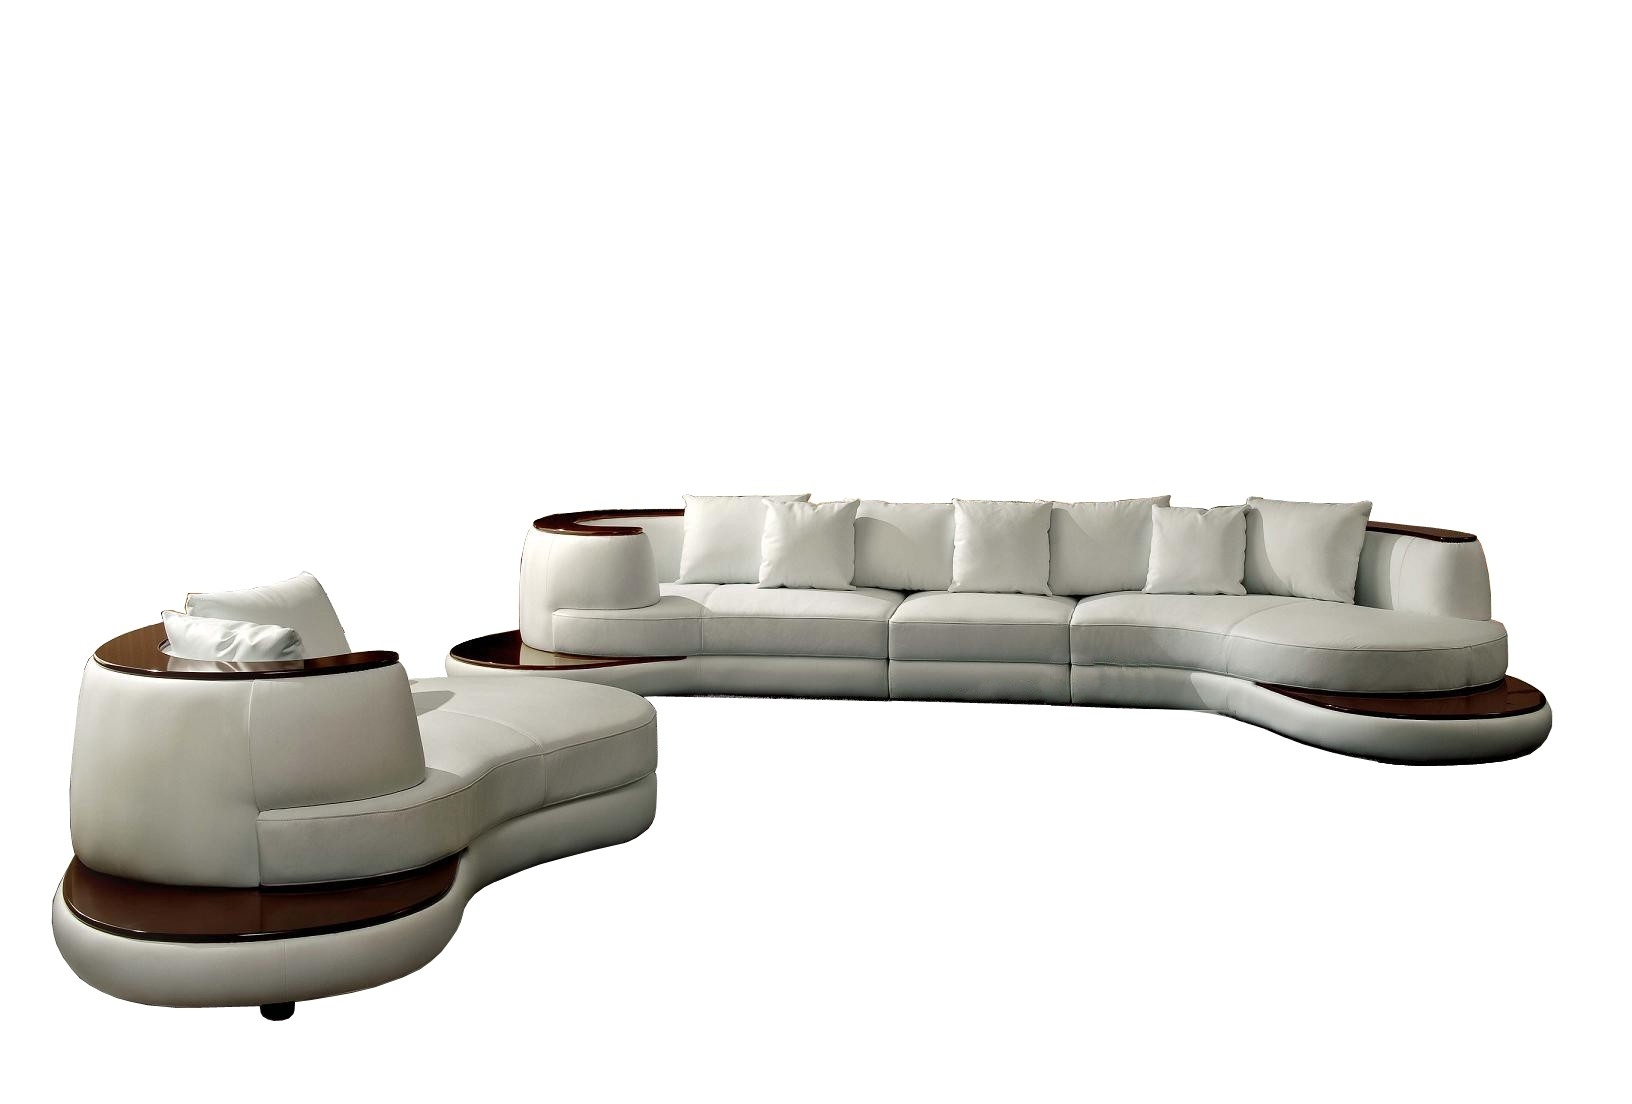 Rounded Corner Sofas Sectional Sofa Curved Corner Wedge For Custom Made Sectional Sofas (View 8 of 15)